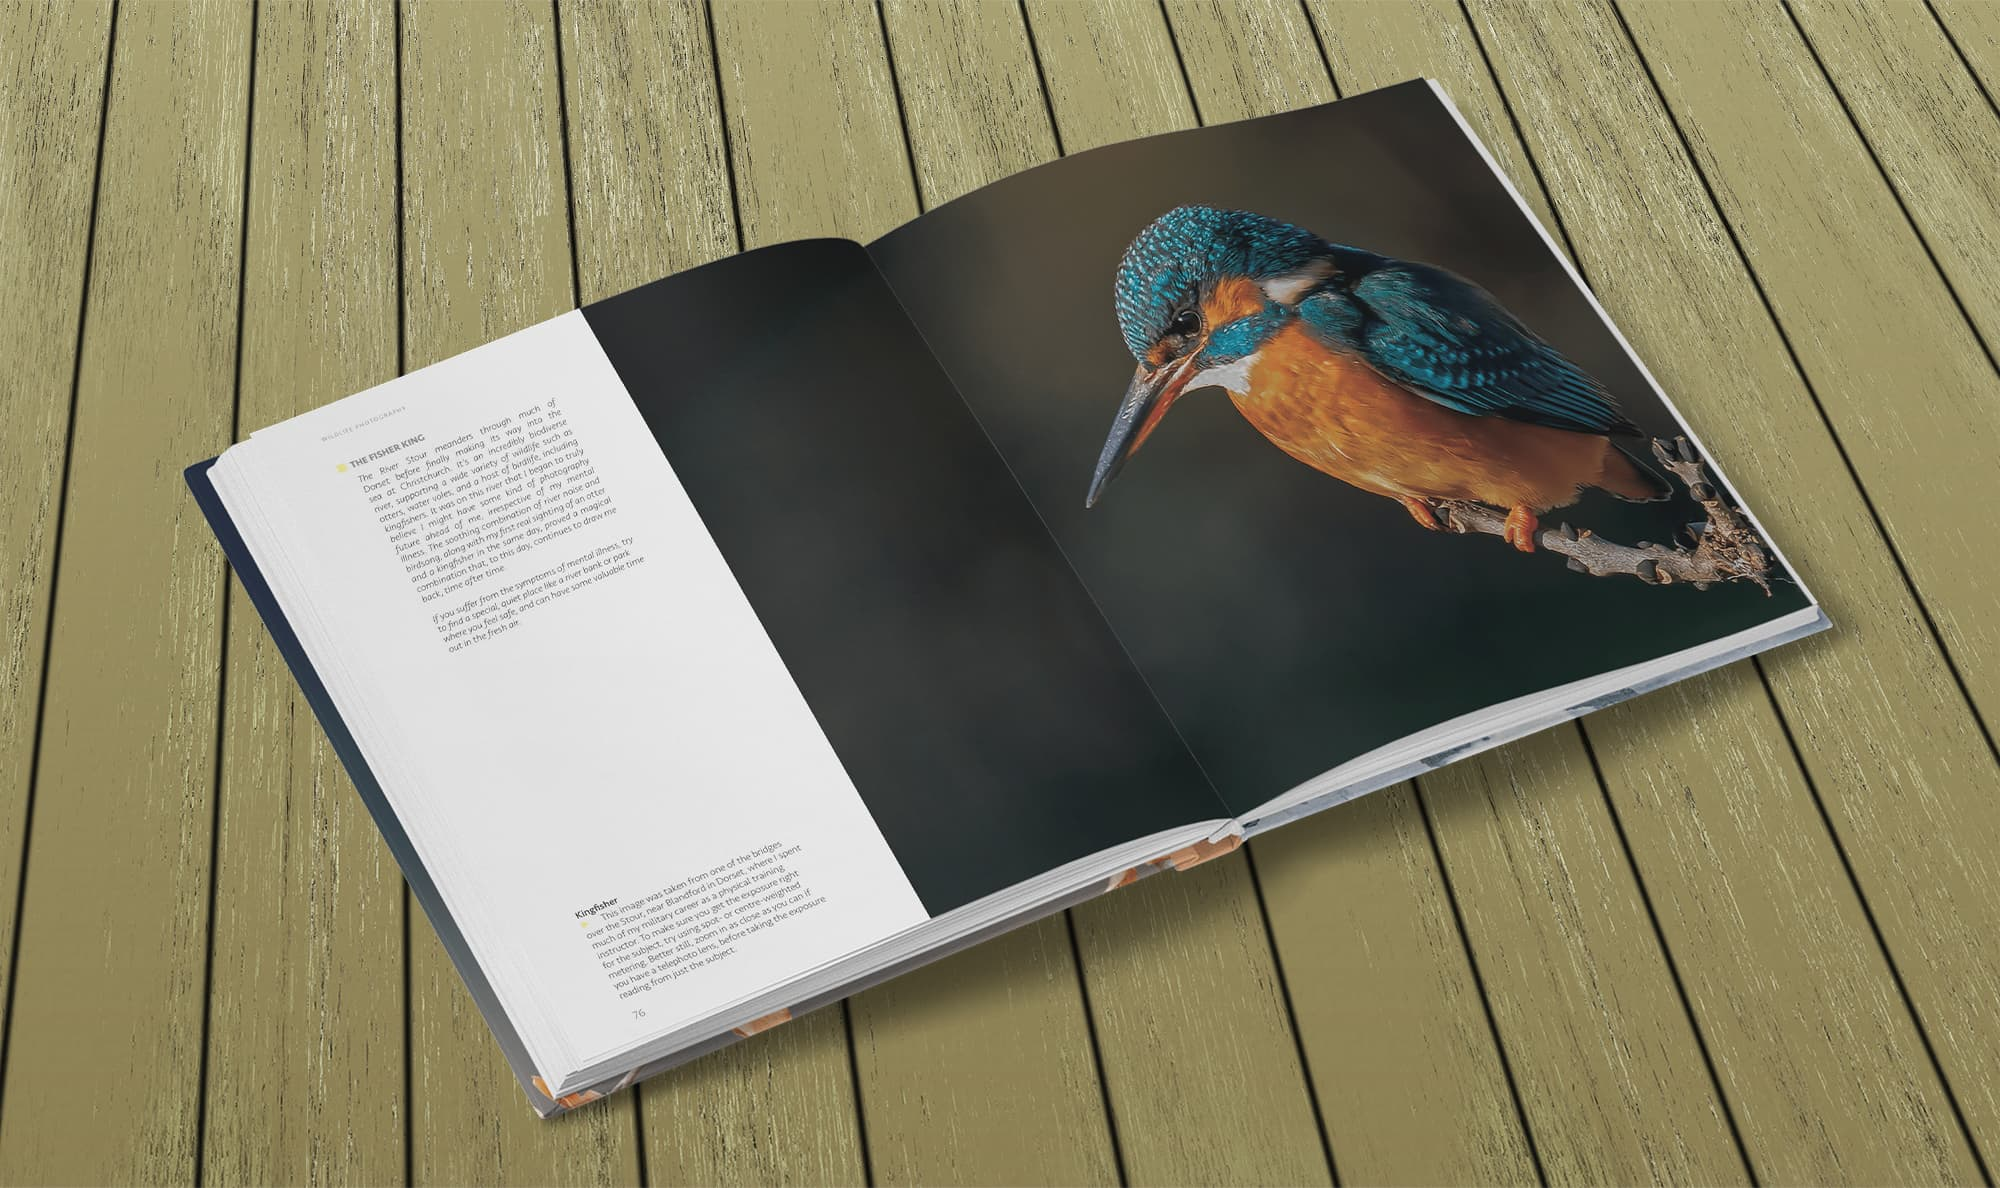 Wildlife Photography by Paul Williams – Kingfisher